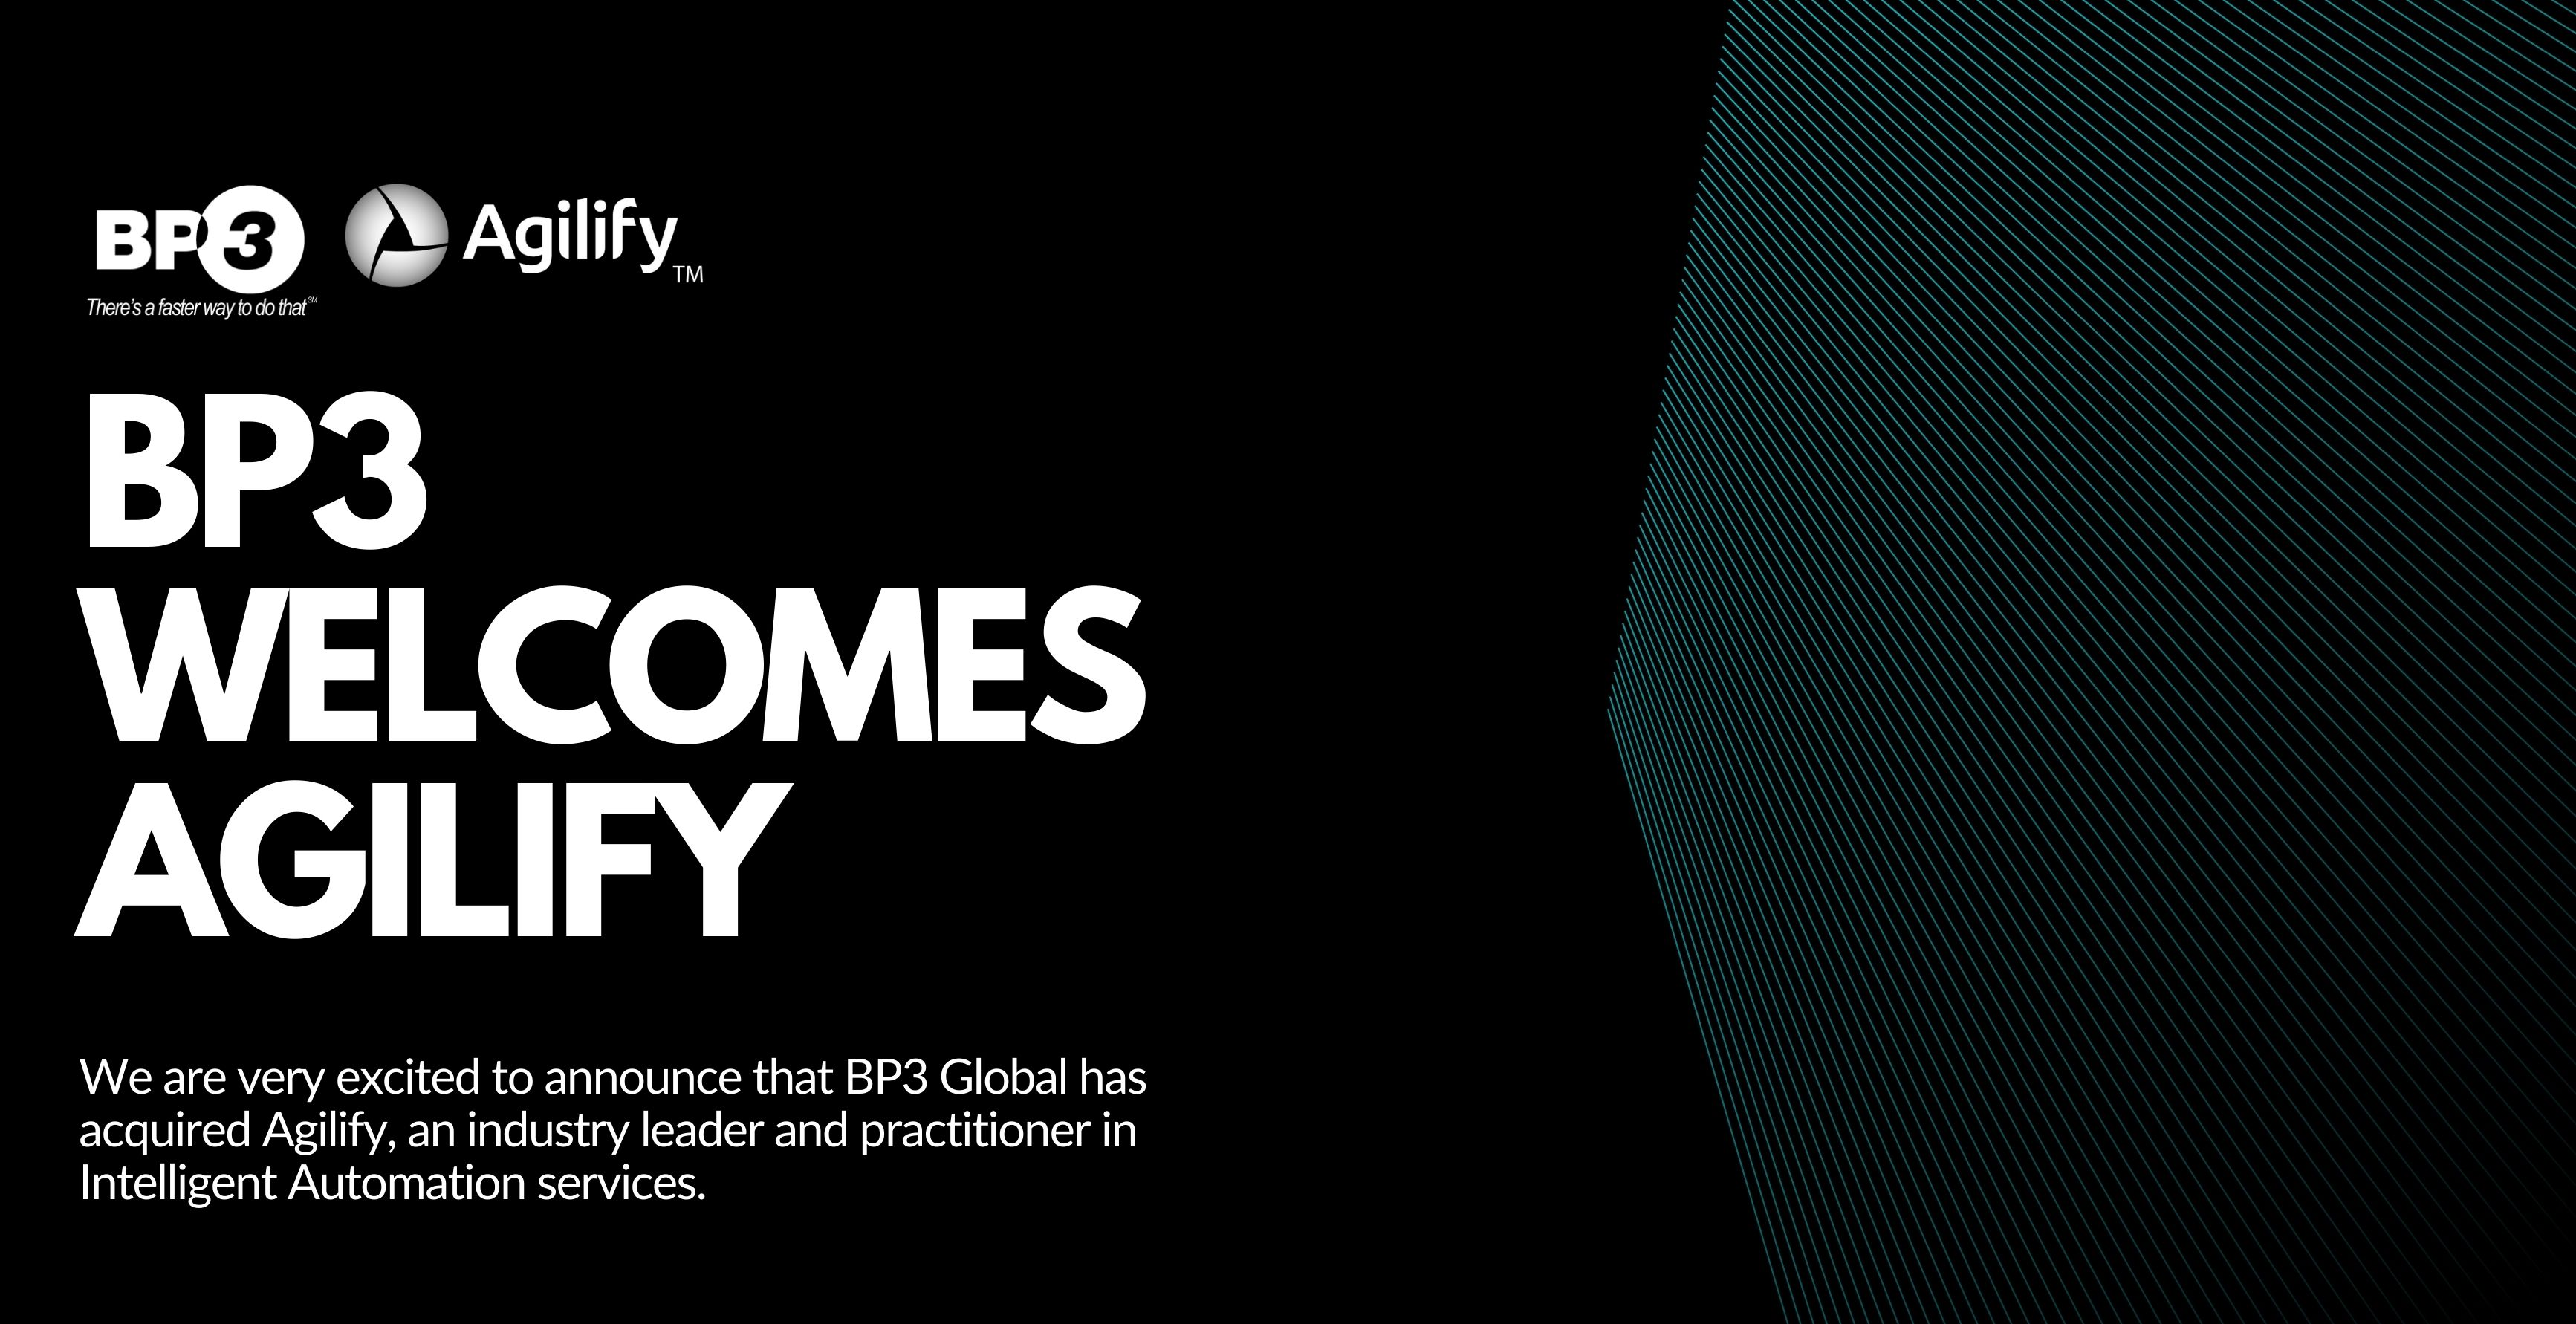 BP3 Acquires Agilify Banner Image